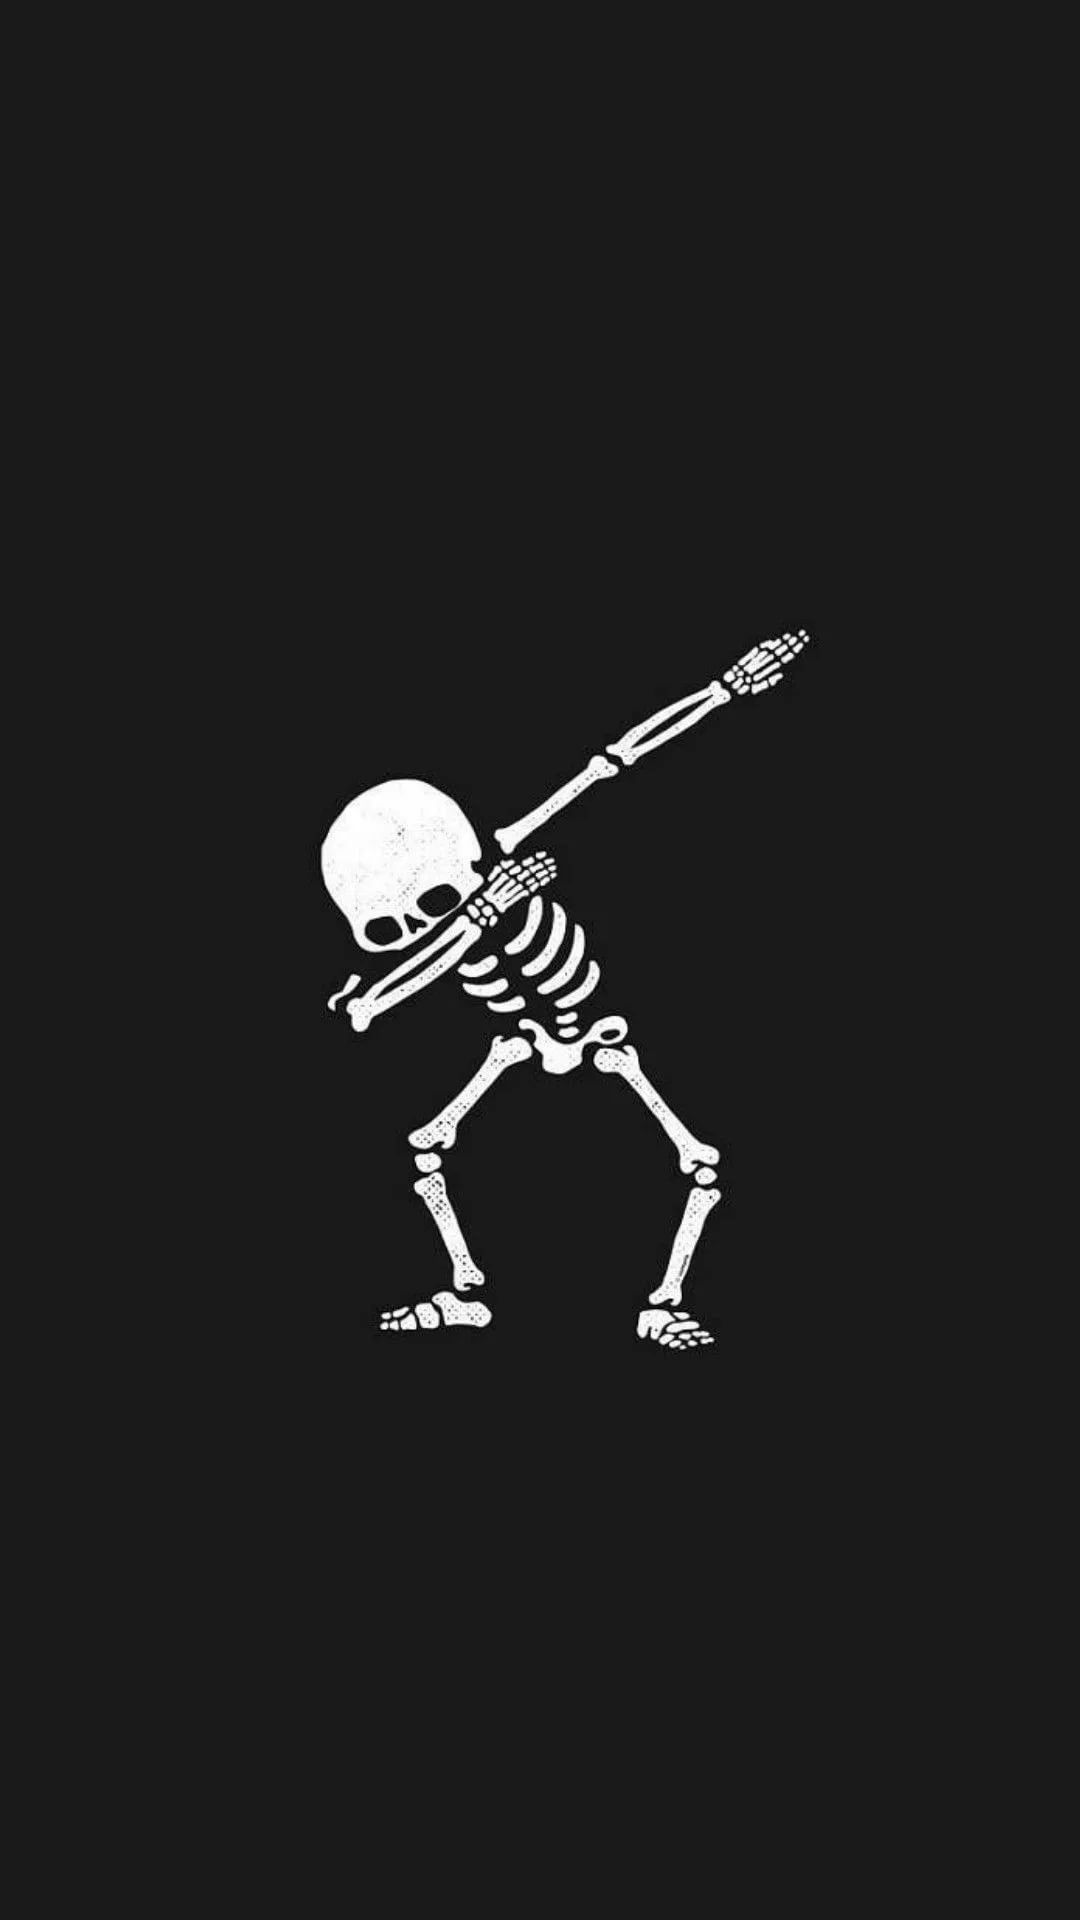 Skeleton iPhone wallpaper high quality